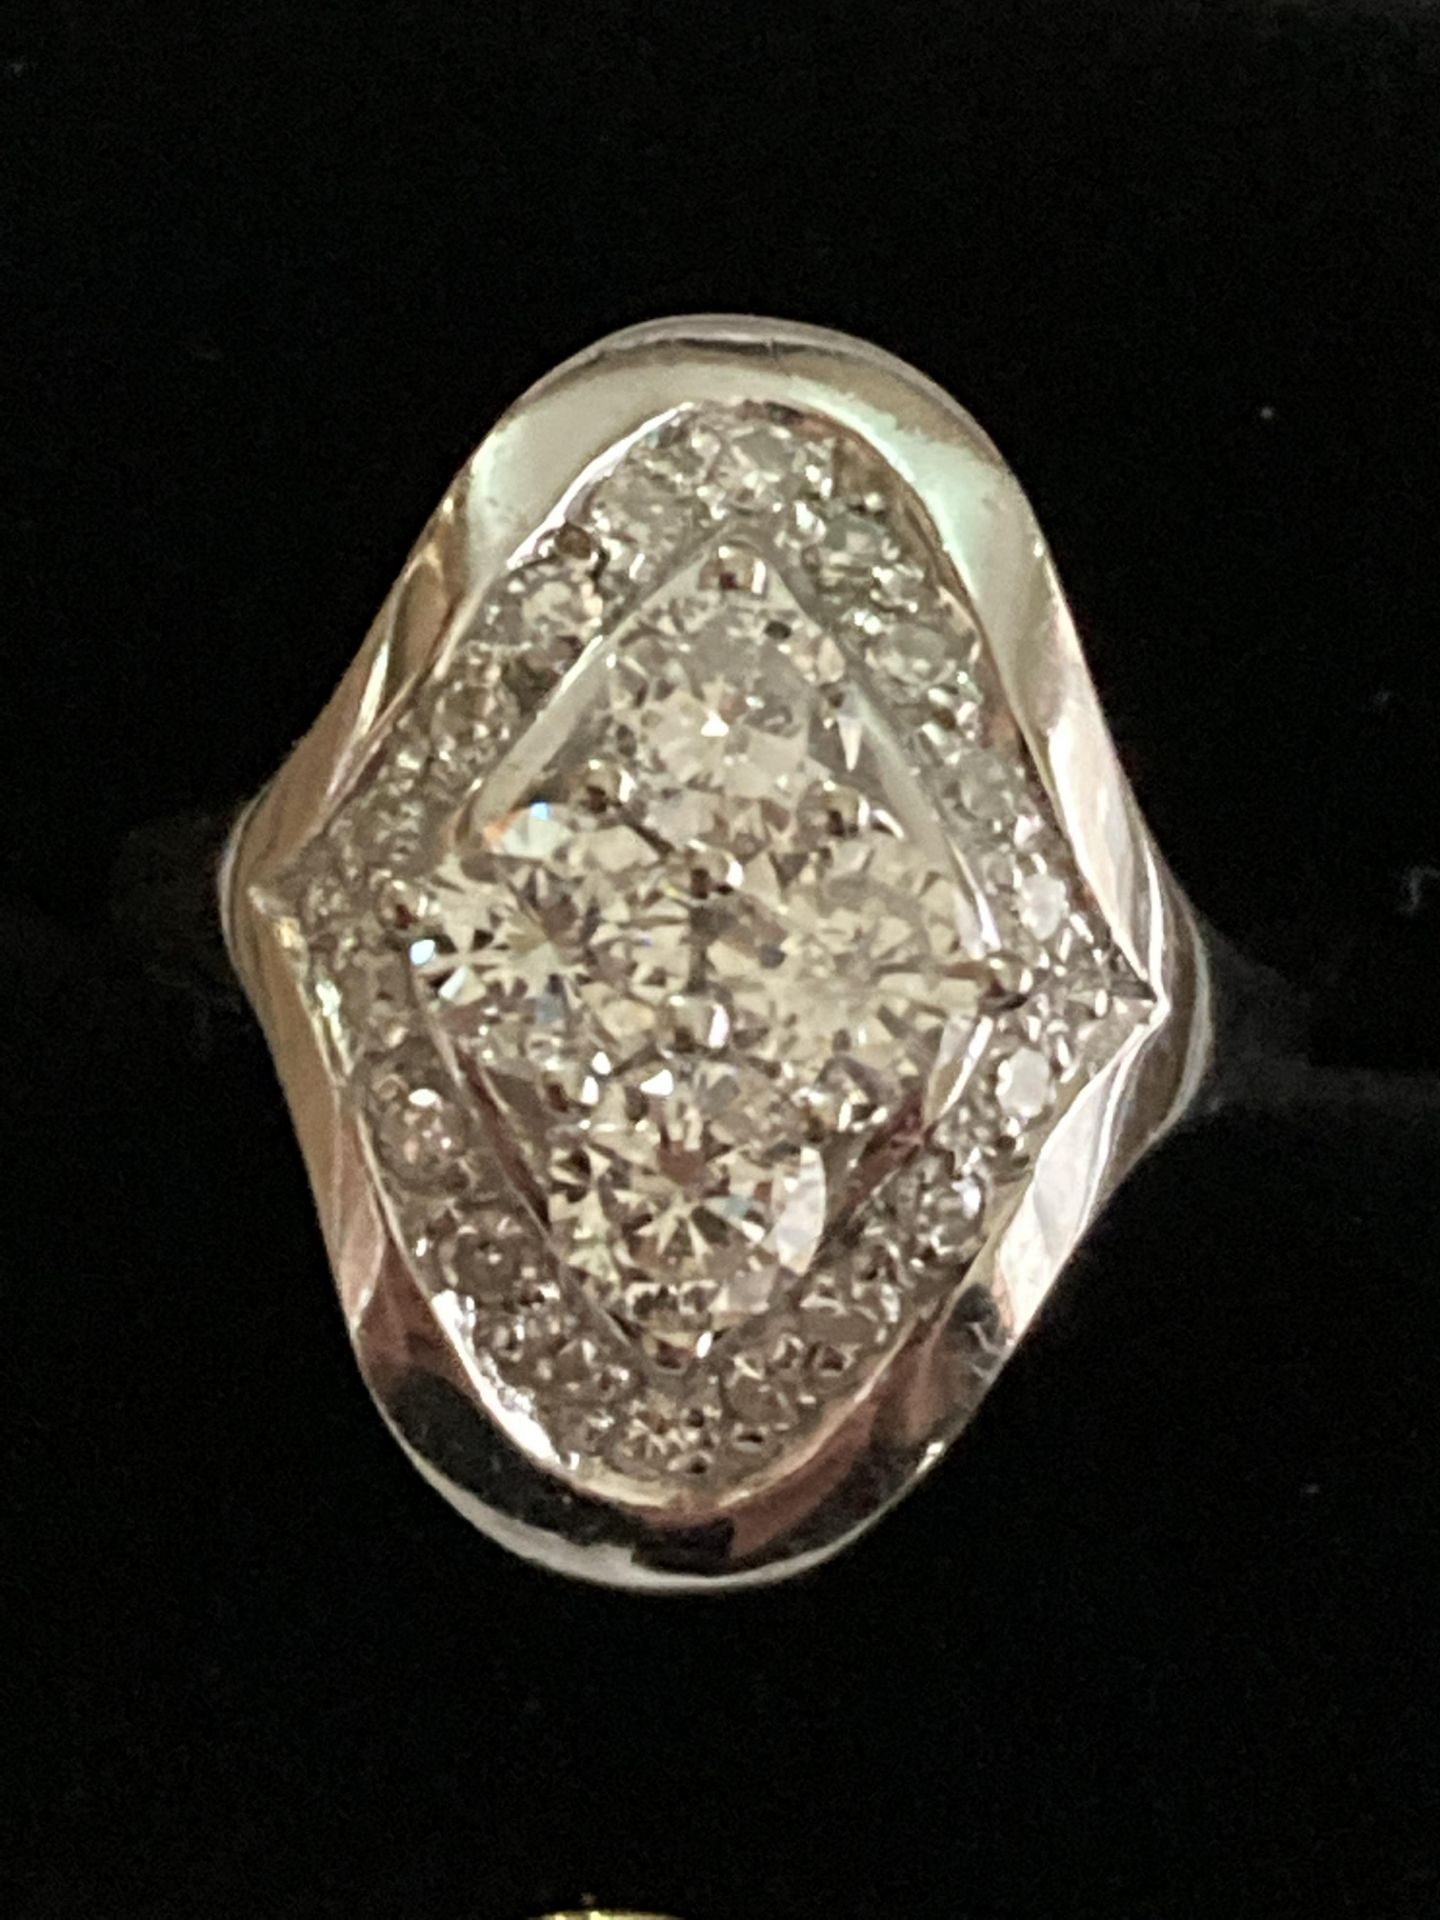 1CT DIAMOND RING IN 14CT WHITE GOLD - SIZE: O 1/2 / WEIGHT: 7.4G - Image 2 of 5